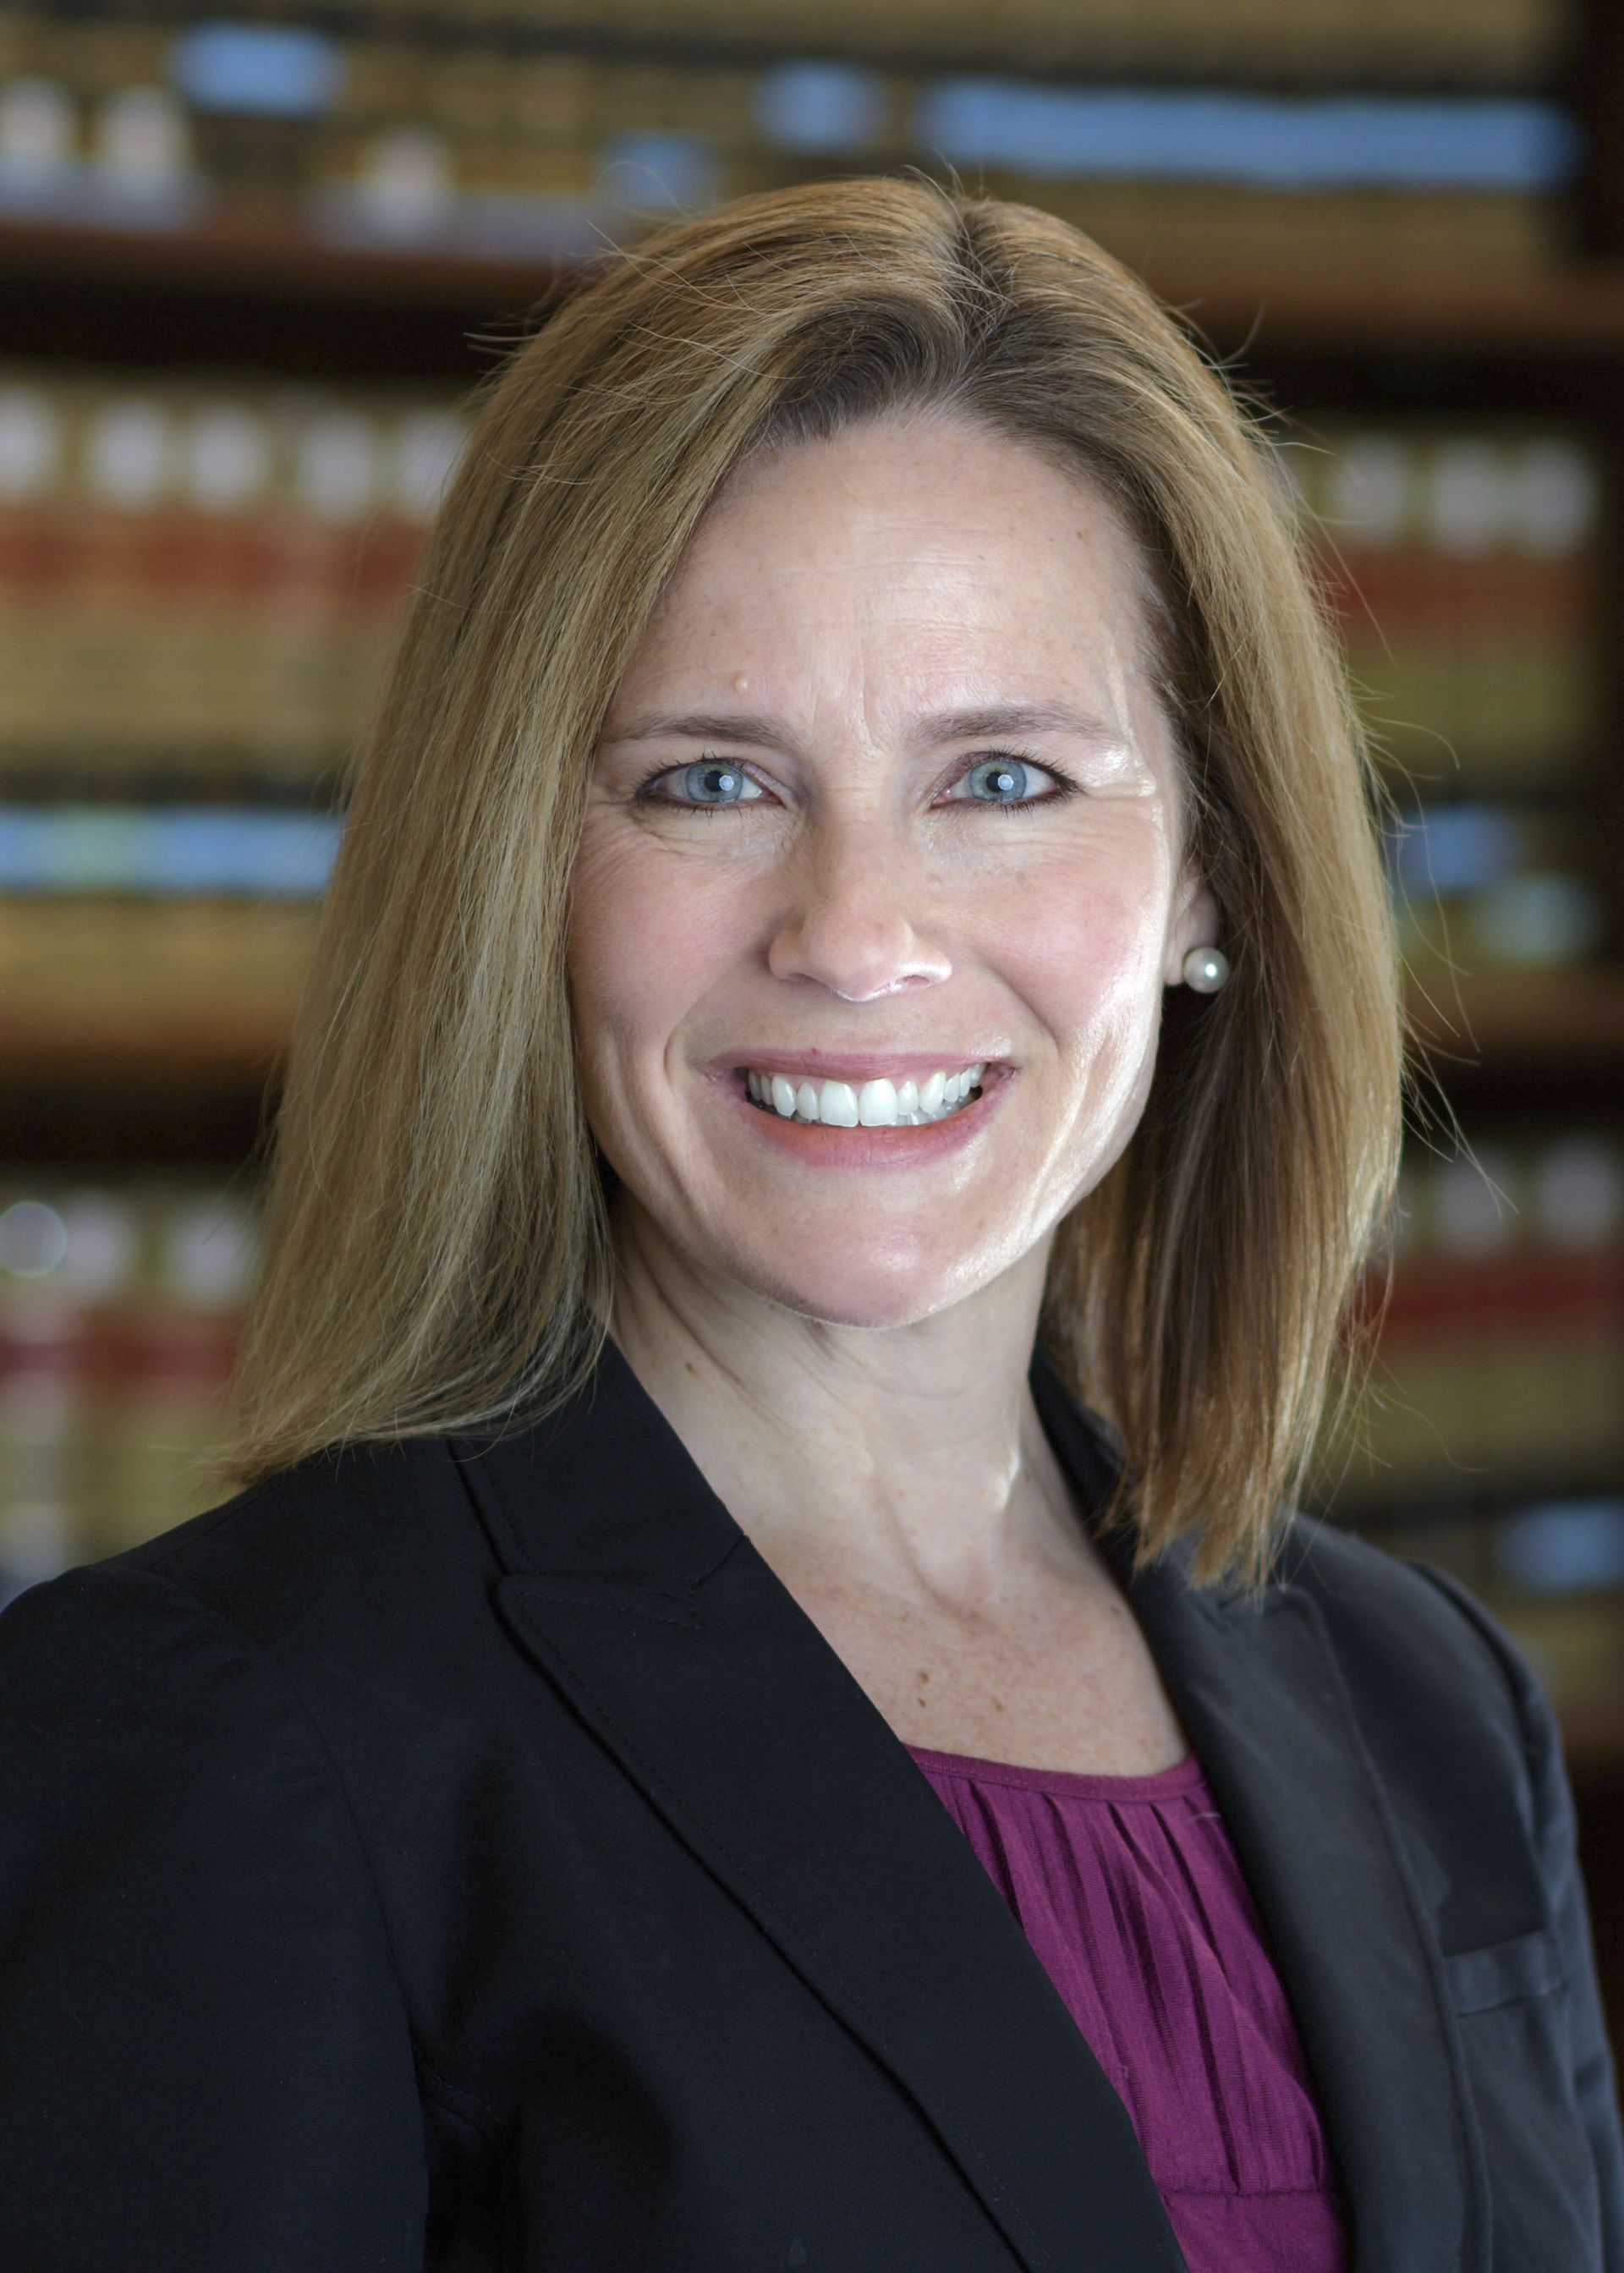 Flashback: Amy Coney Barrett pressed by Dems in 2017 hearing over Catholic faith: 'Dogma lives loudly in you'